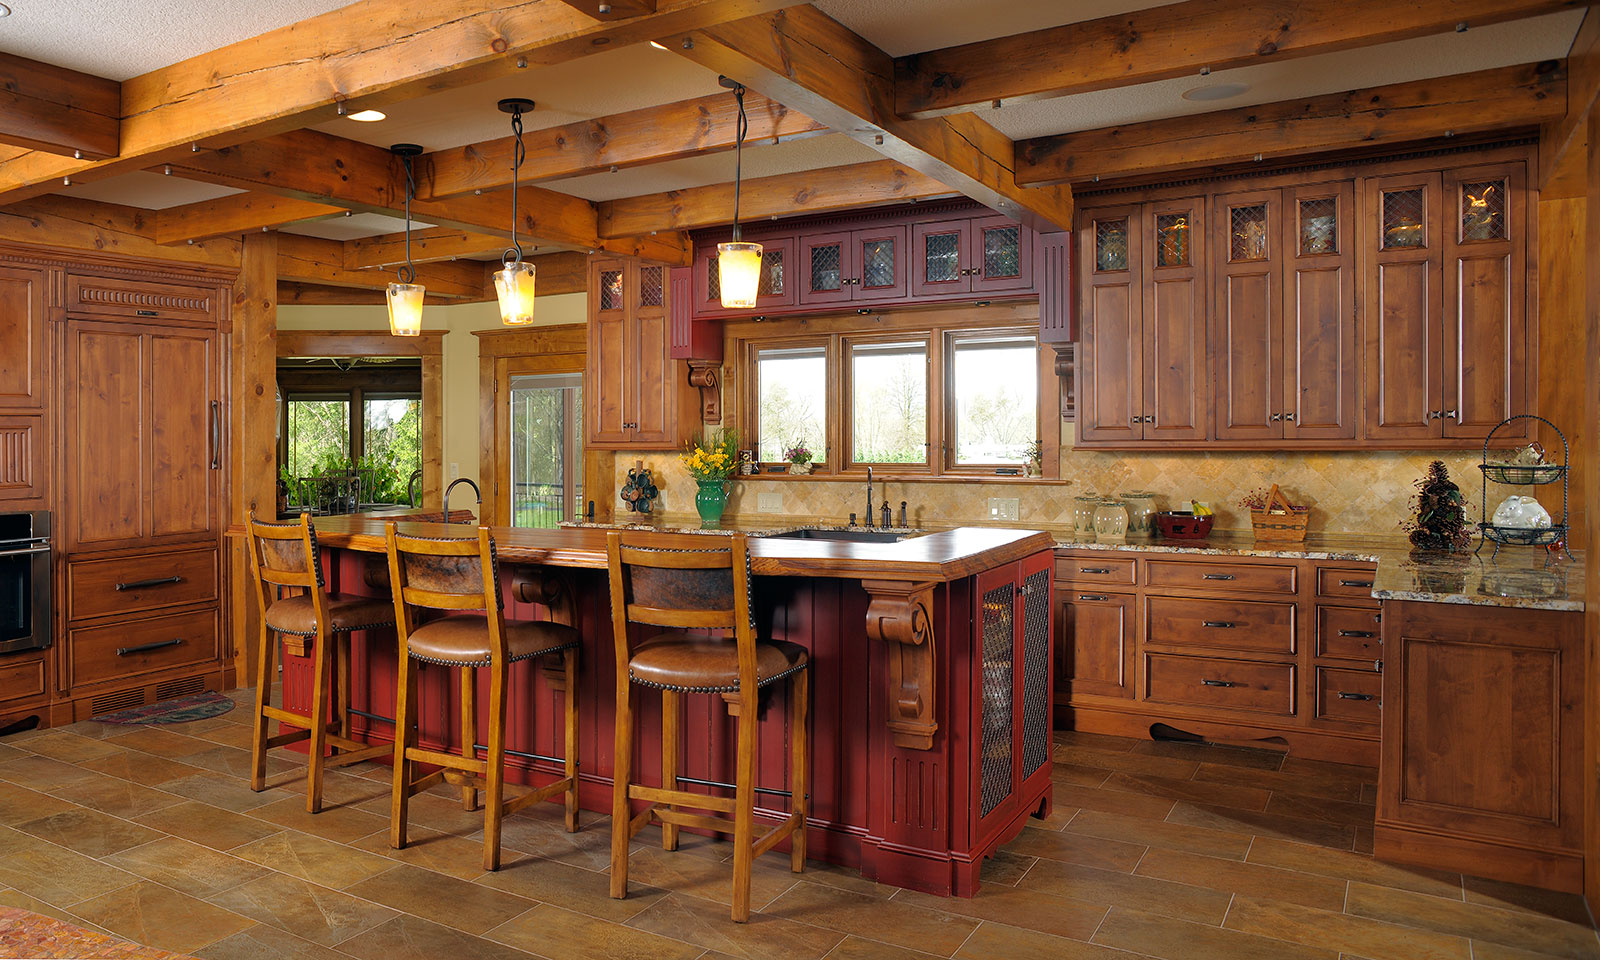 Italian Rustic Kitchen Design